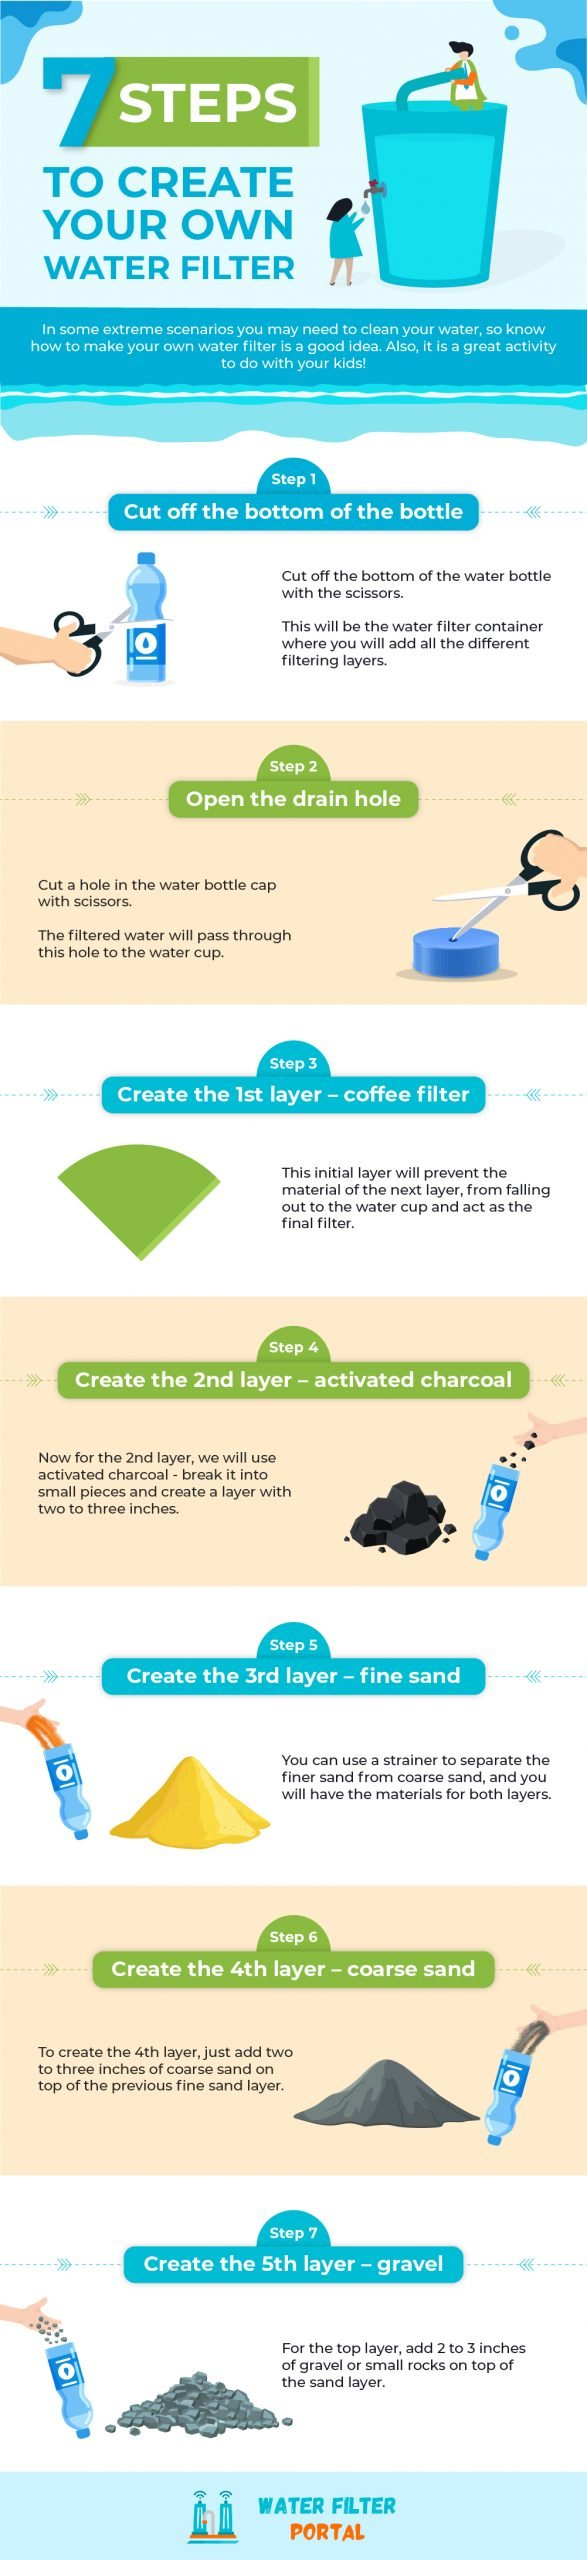 dyi-water-filter-infographic